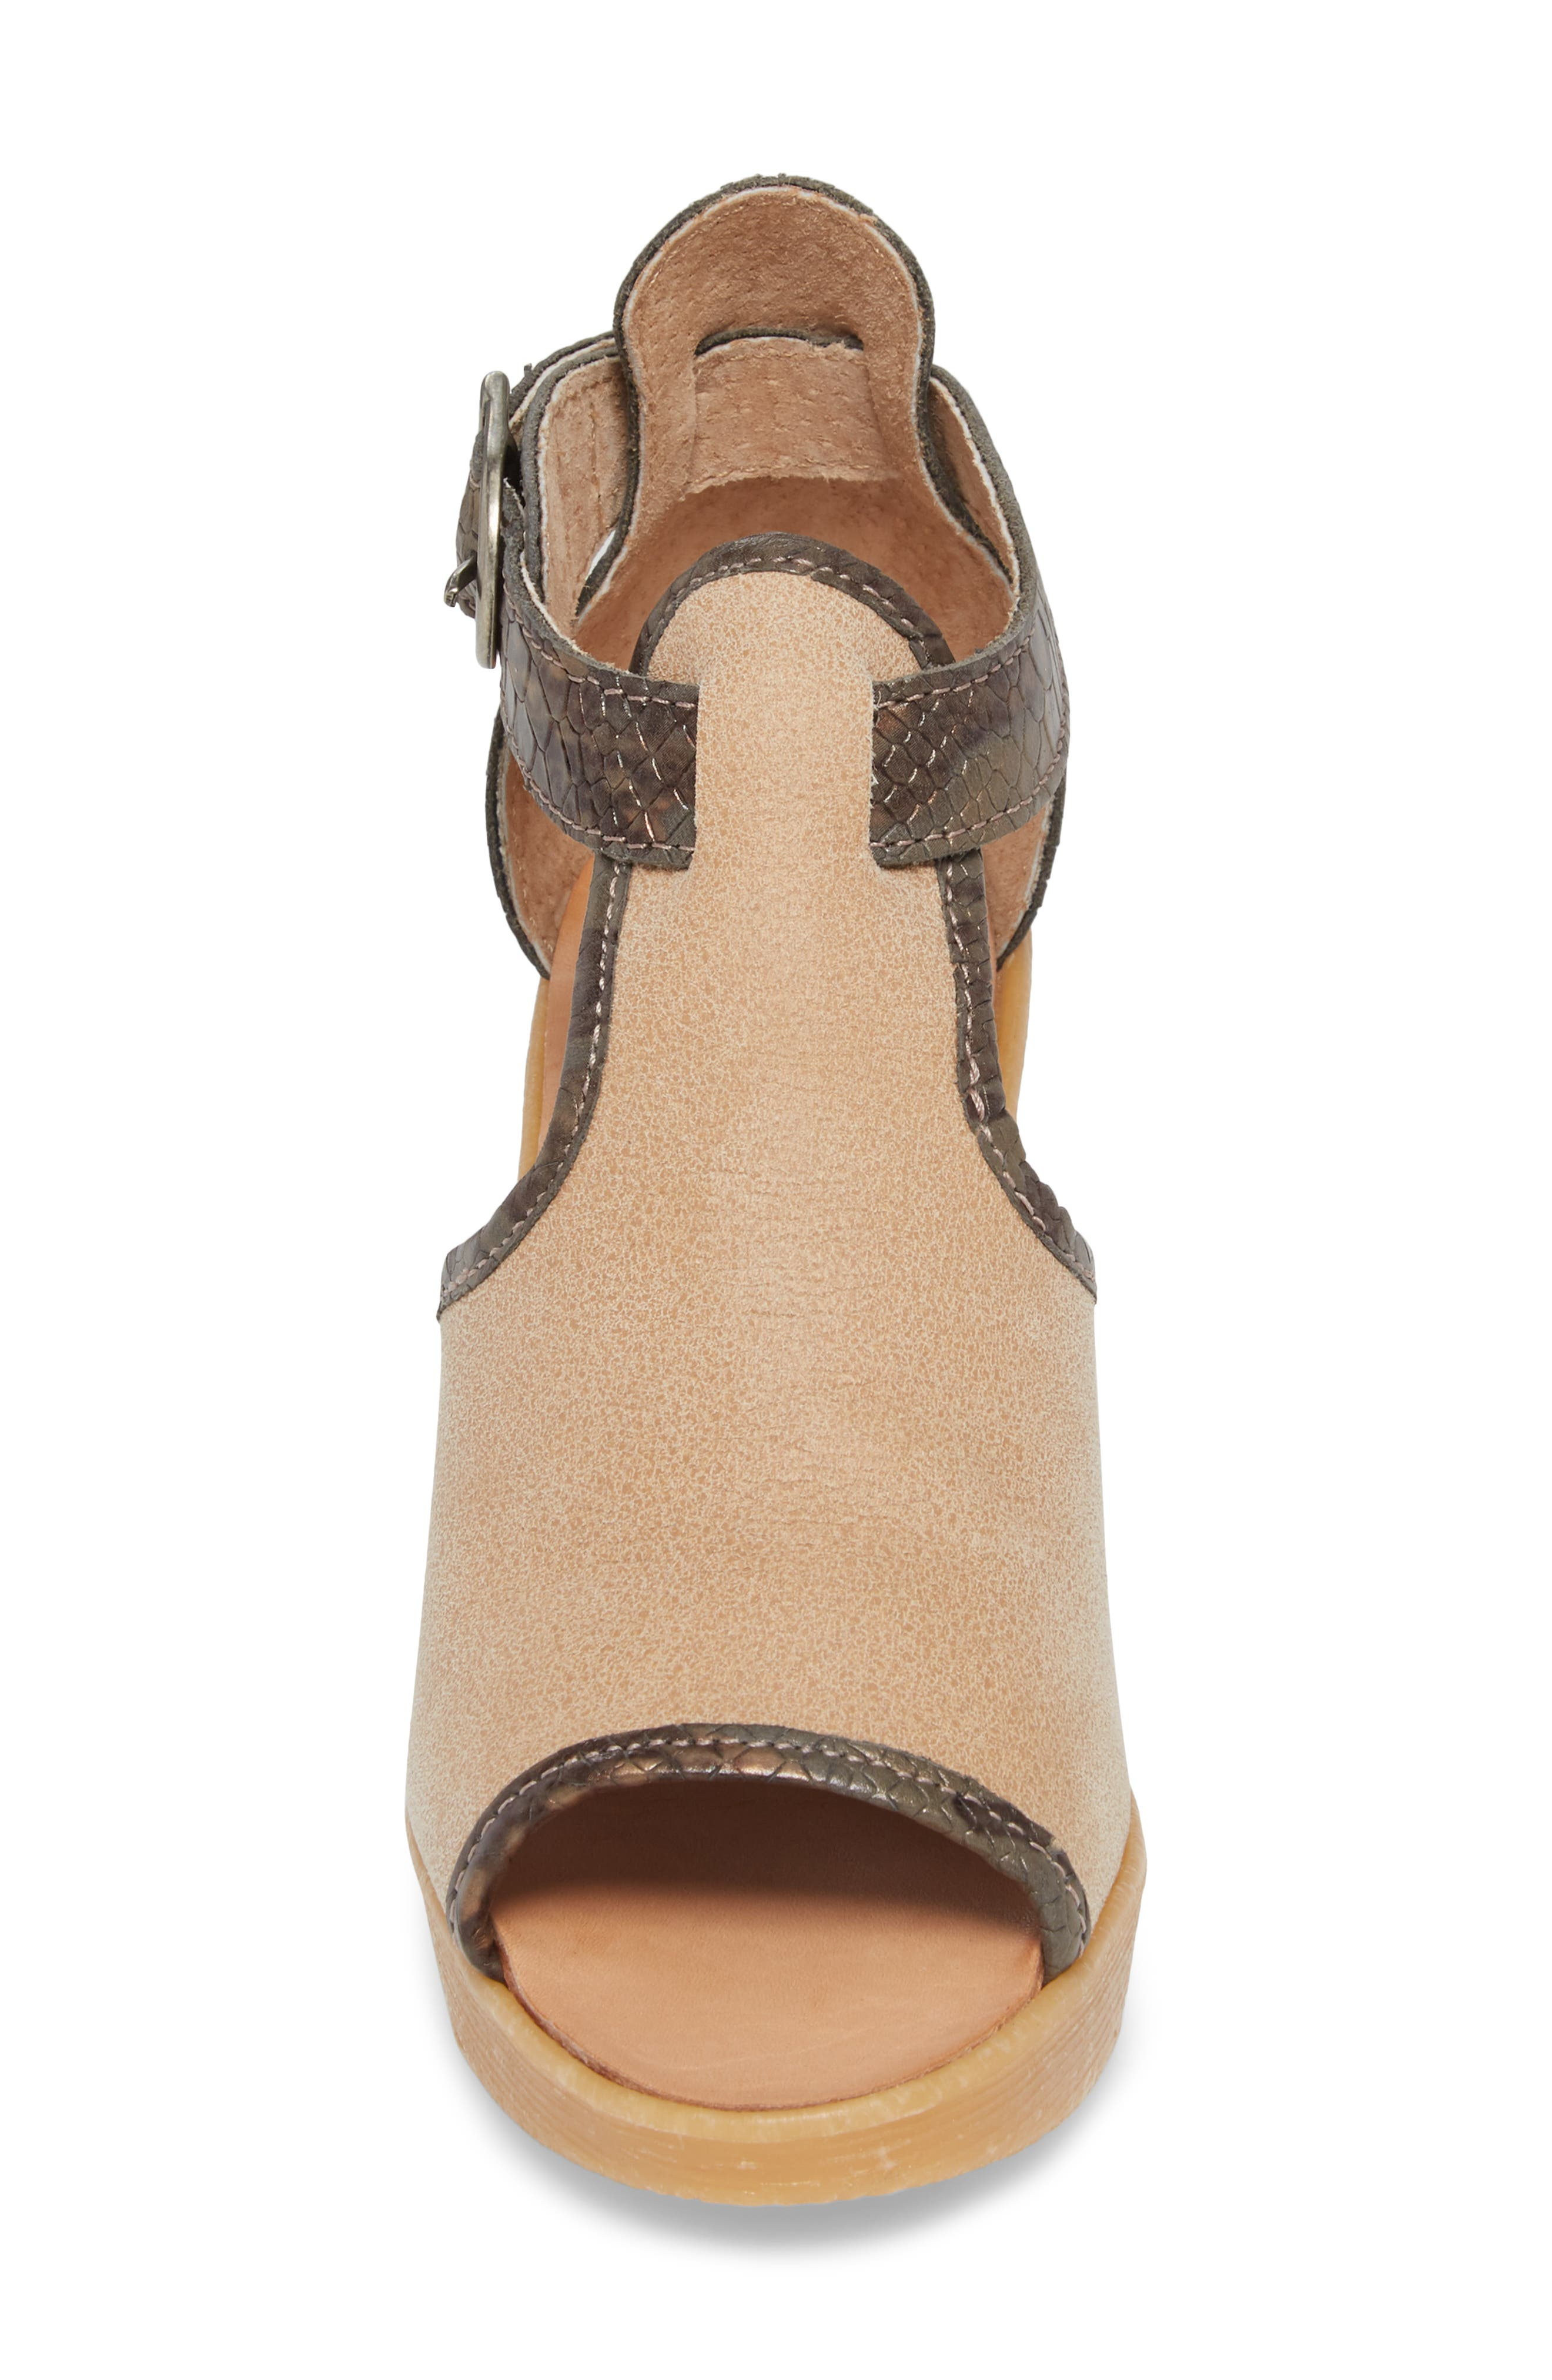 Queen Bee Wedge Sandal,                             Alternate thumbnail 4, color,                             NUDE MIX LEATHER